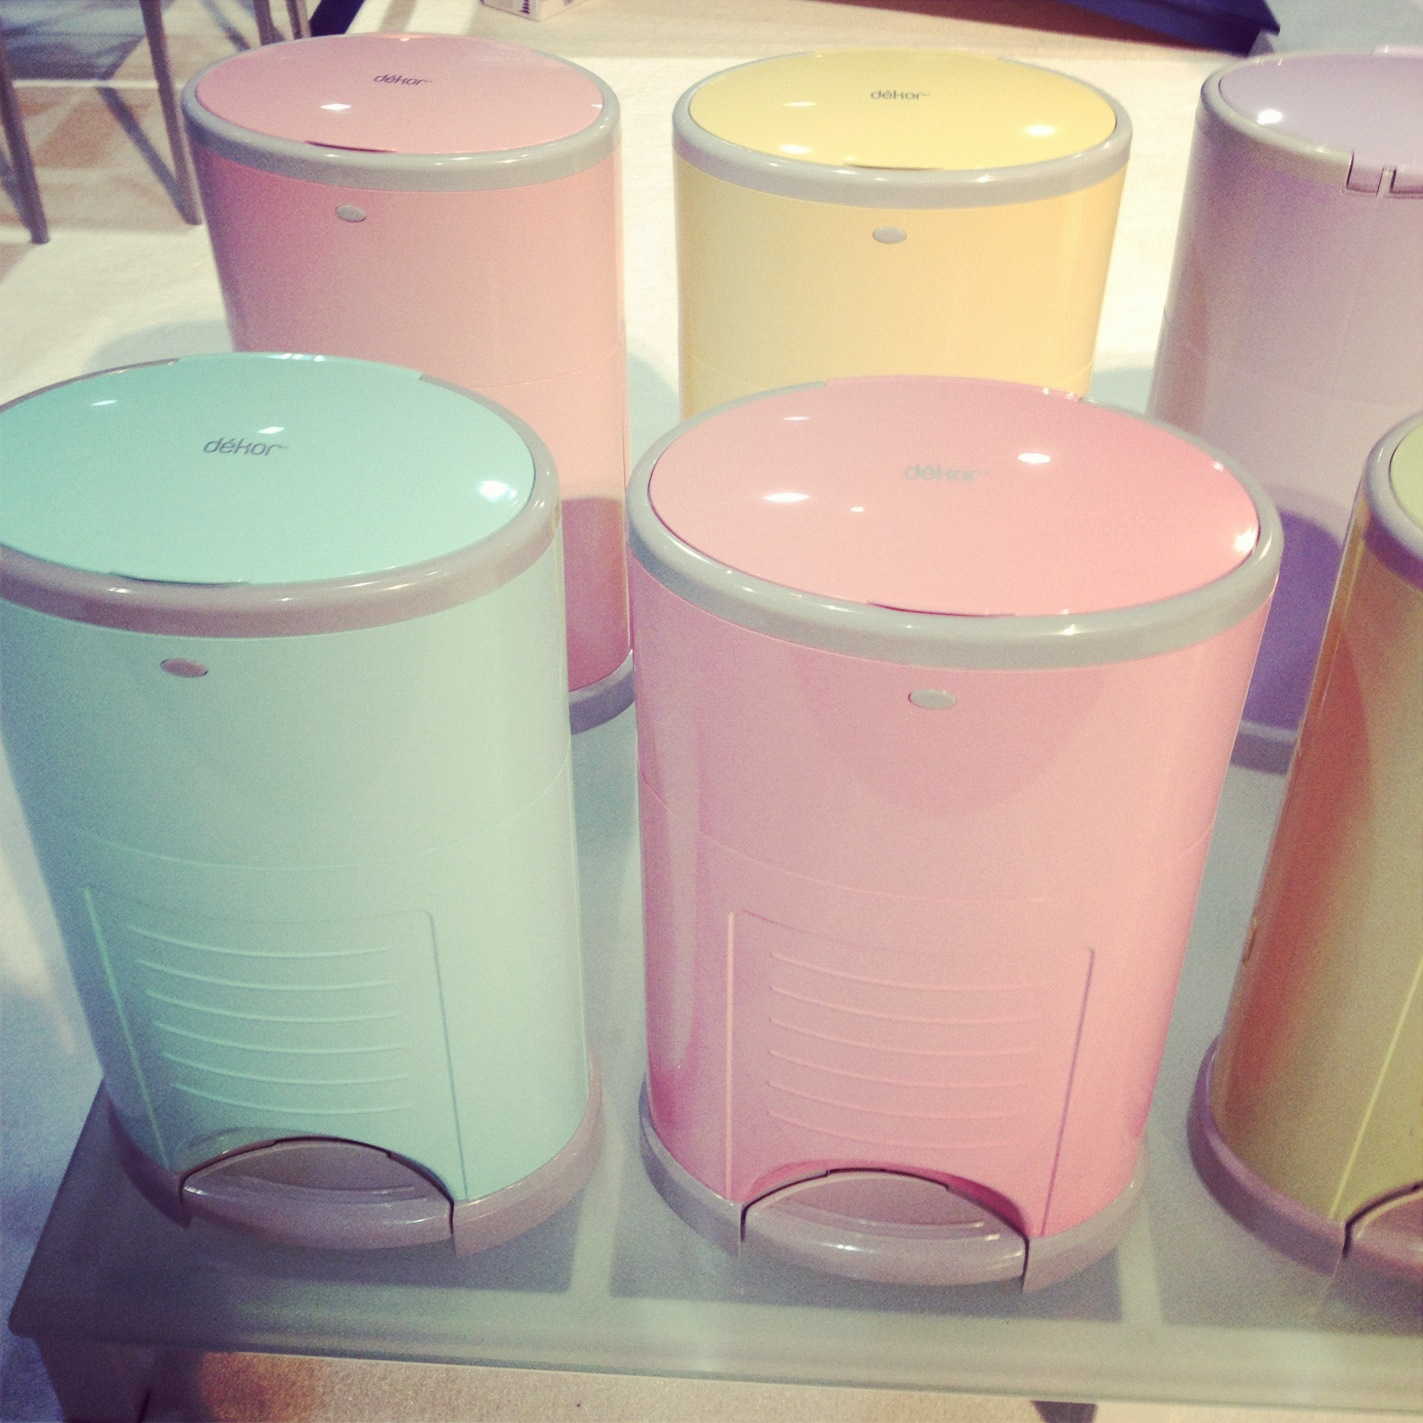 Diaper Dekor is introducing color to its diaper pail line  94 New Baby Products That Will Hit